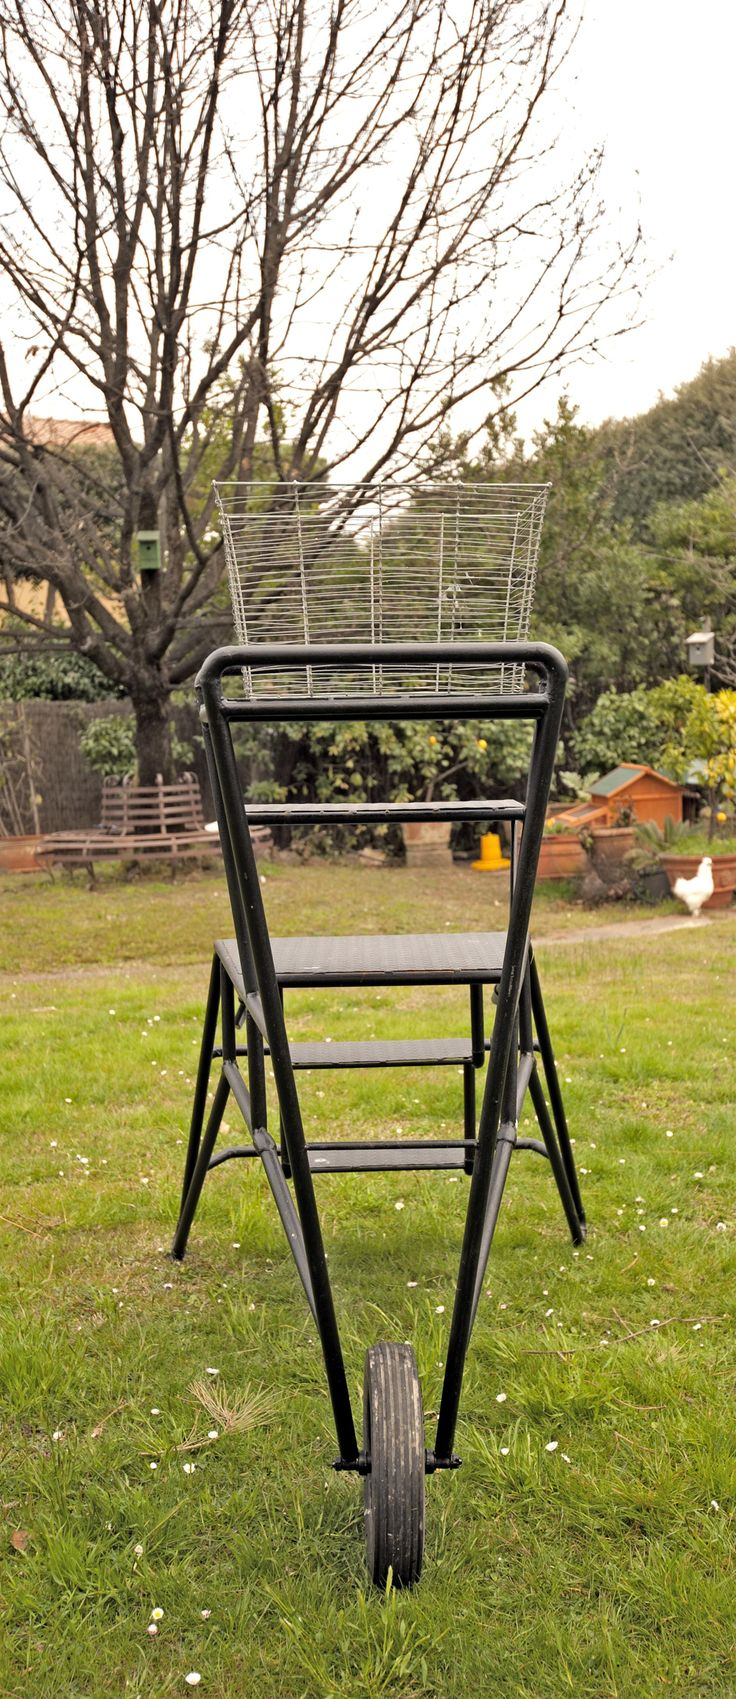 79 best images about garden tools on pinterest gardens forks and versailles - Must tools small garden orchard ...